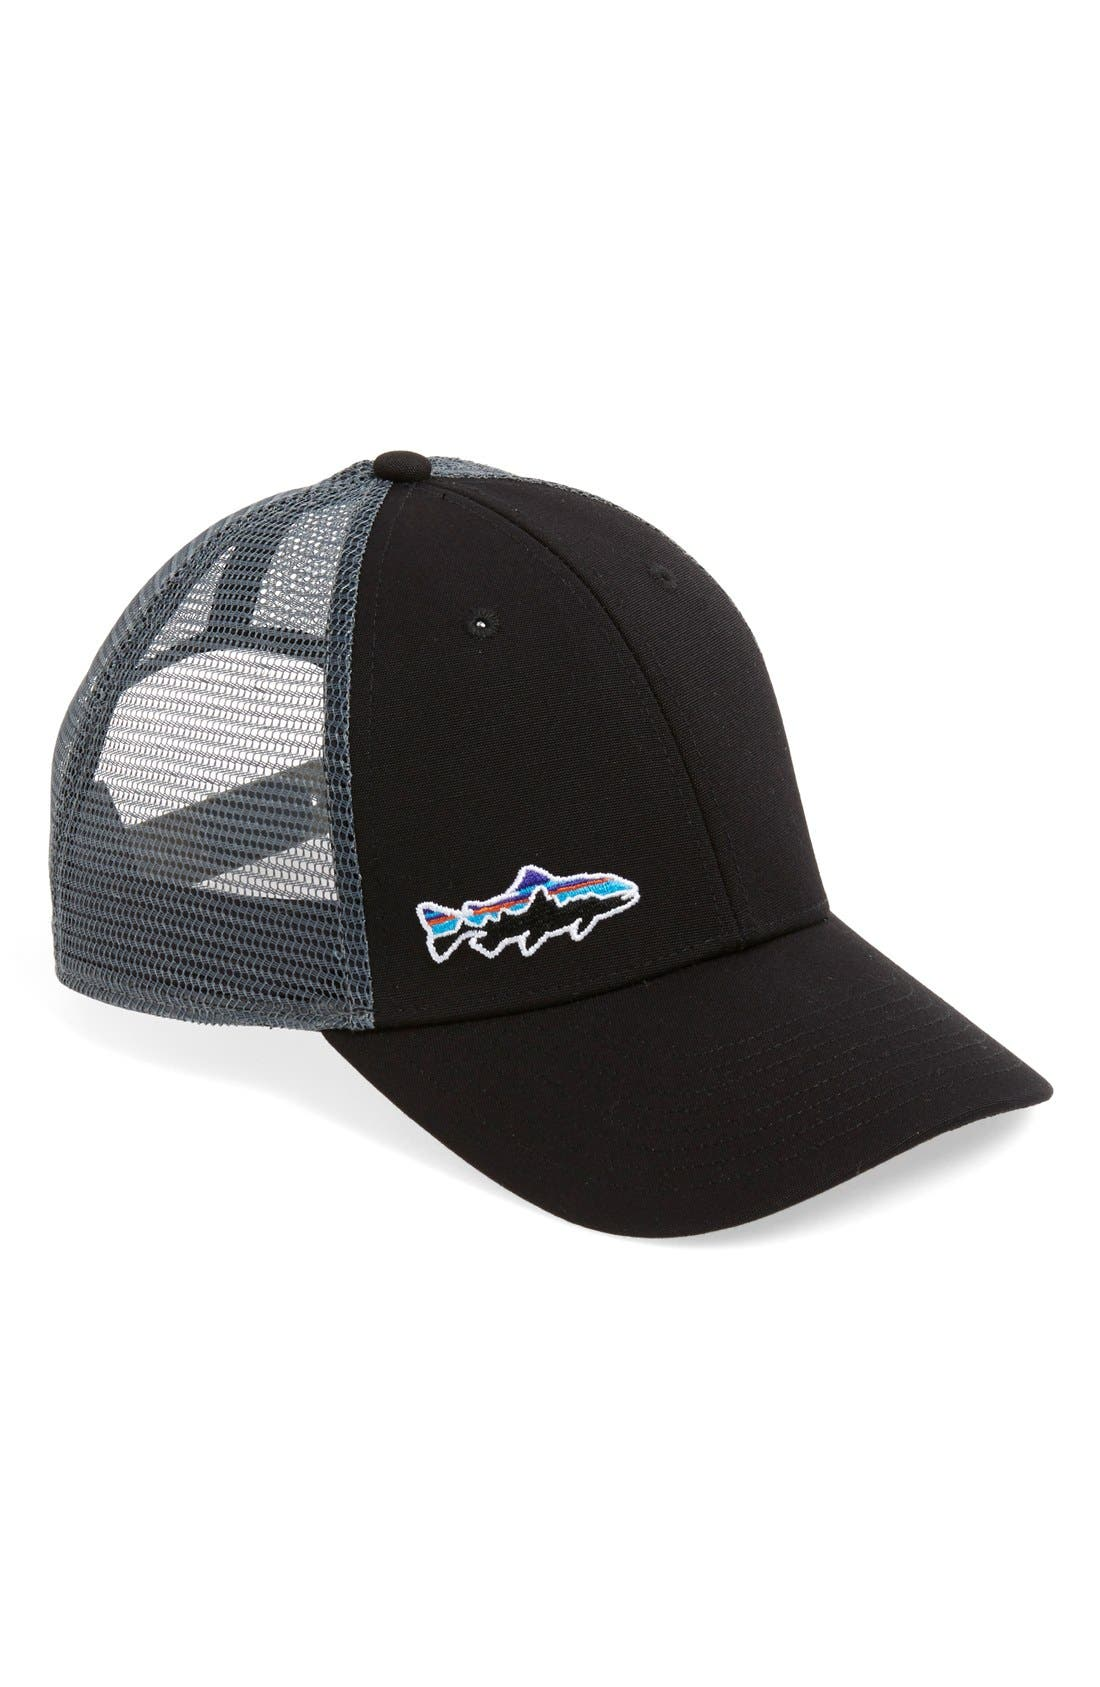 Main Image - Patagonia 'Fitz Roy' Trucker Hat